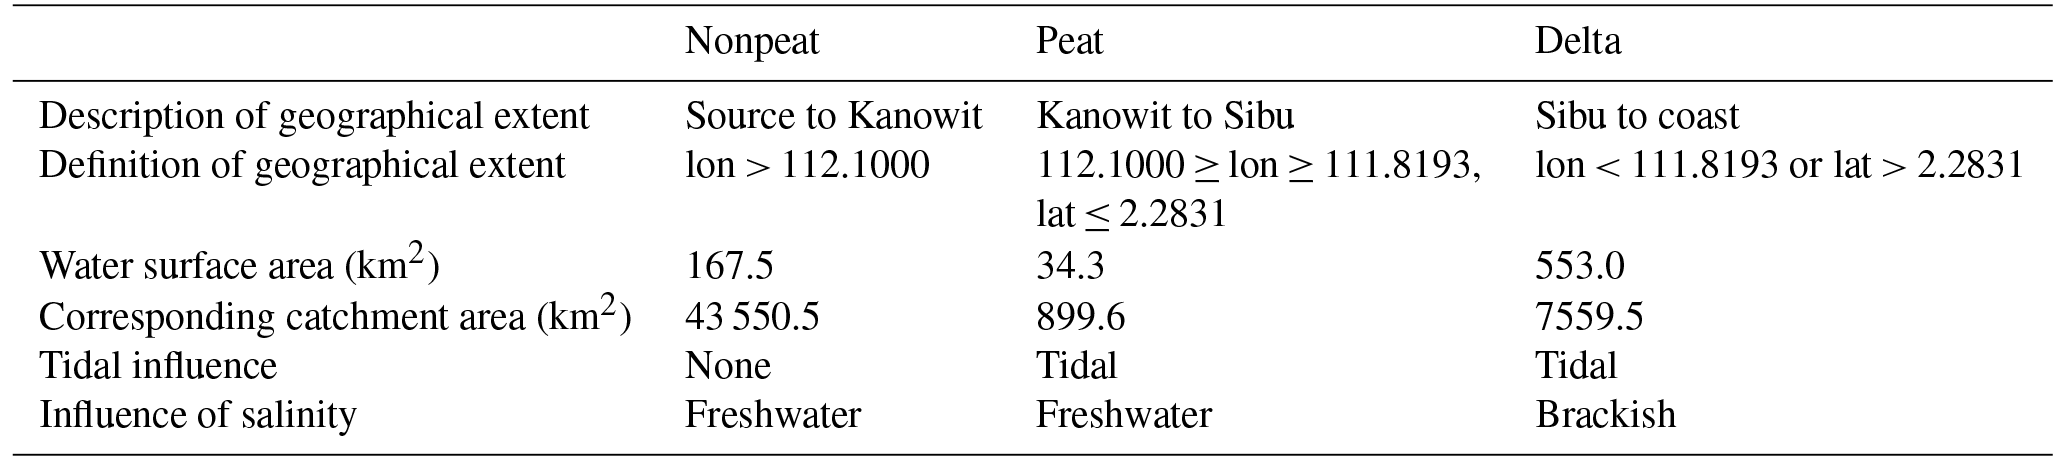 BG - Impact of peatlands on carbon dioxide (CO2) emissions from the